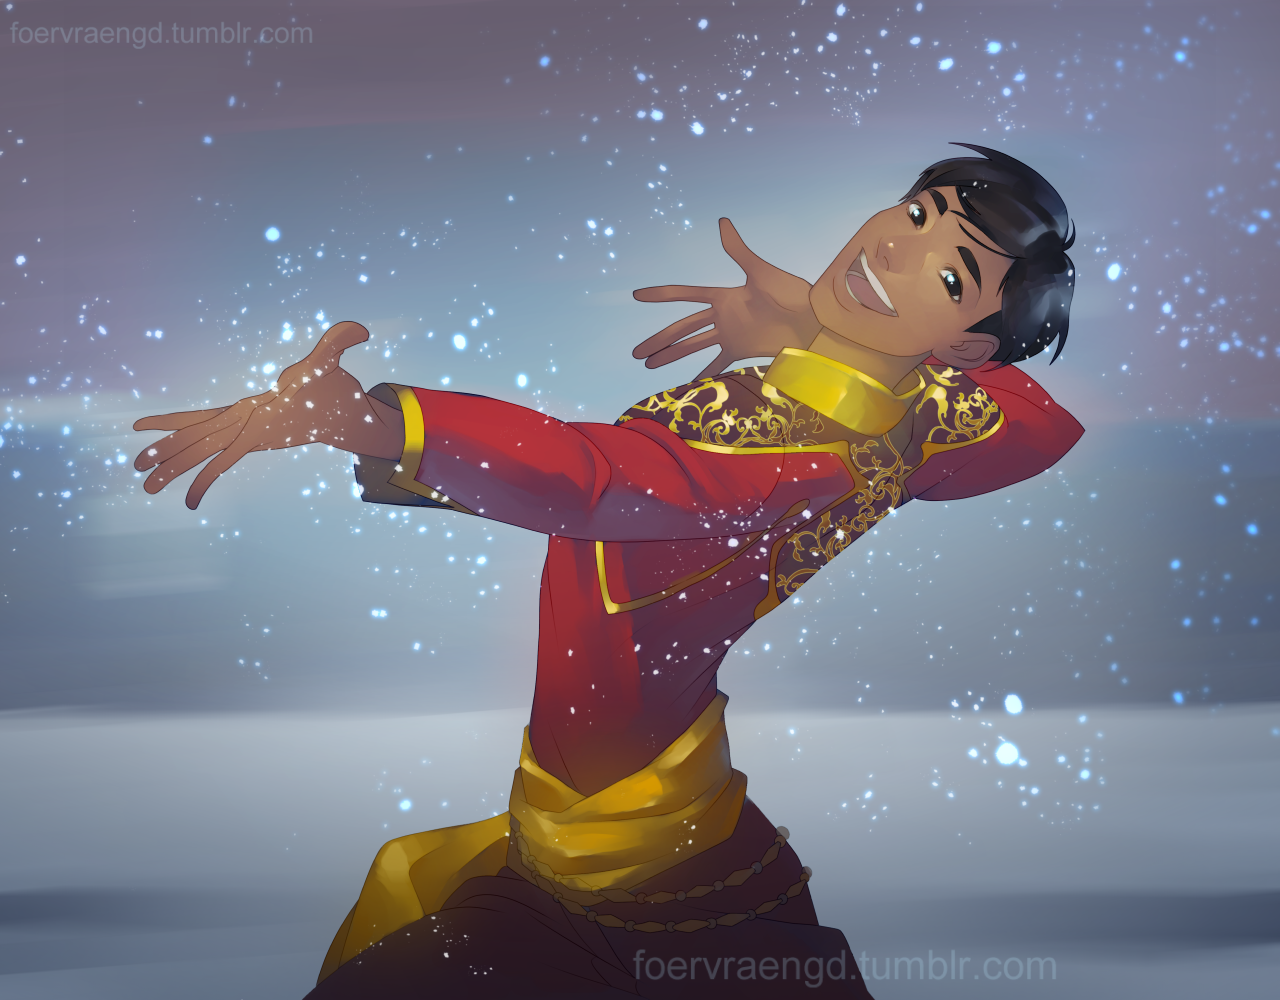 """foervraengd: """"Phichit from Yuuri On Ice is precious and I love him This is a relatively simple painting I did because I havent done much digital art lately and I'm feeling very rusty. But I hope y'all like it! """""""